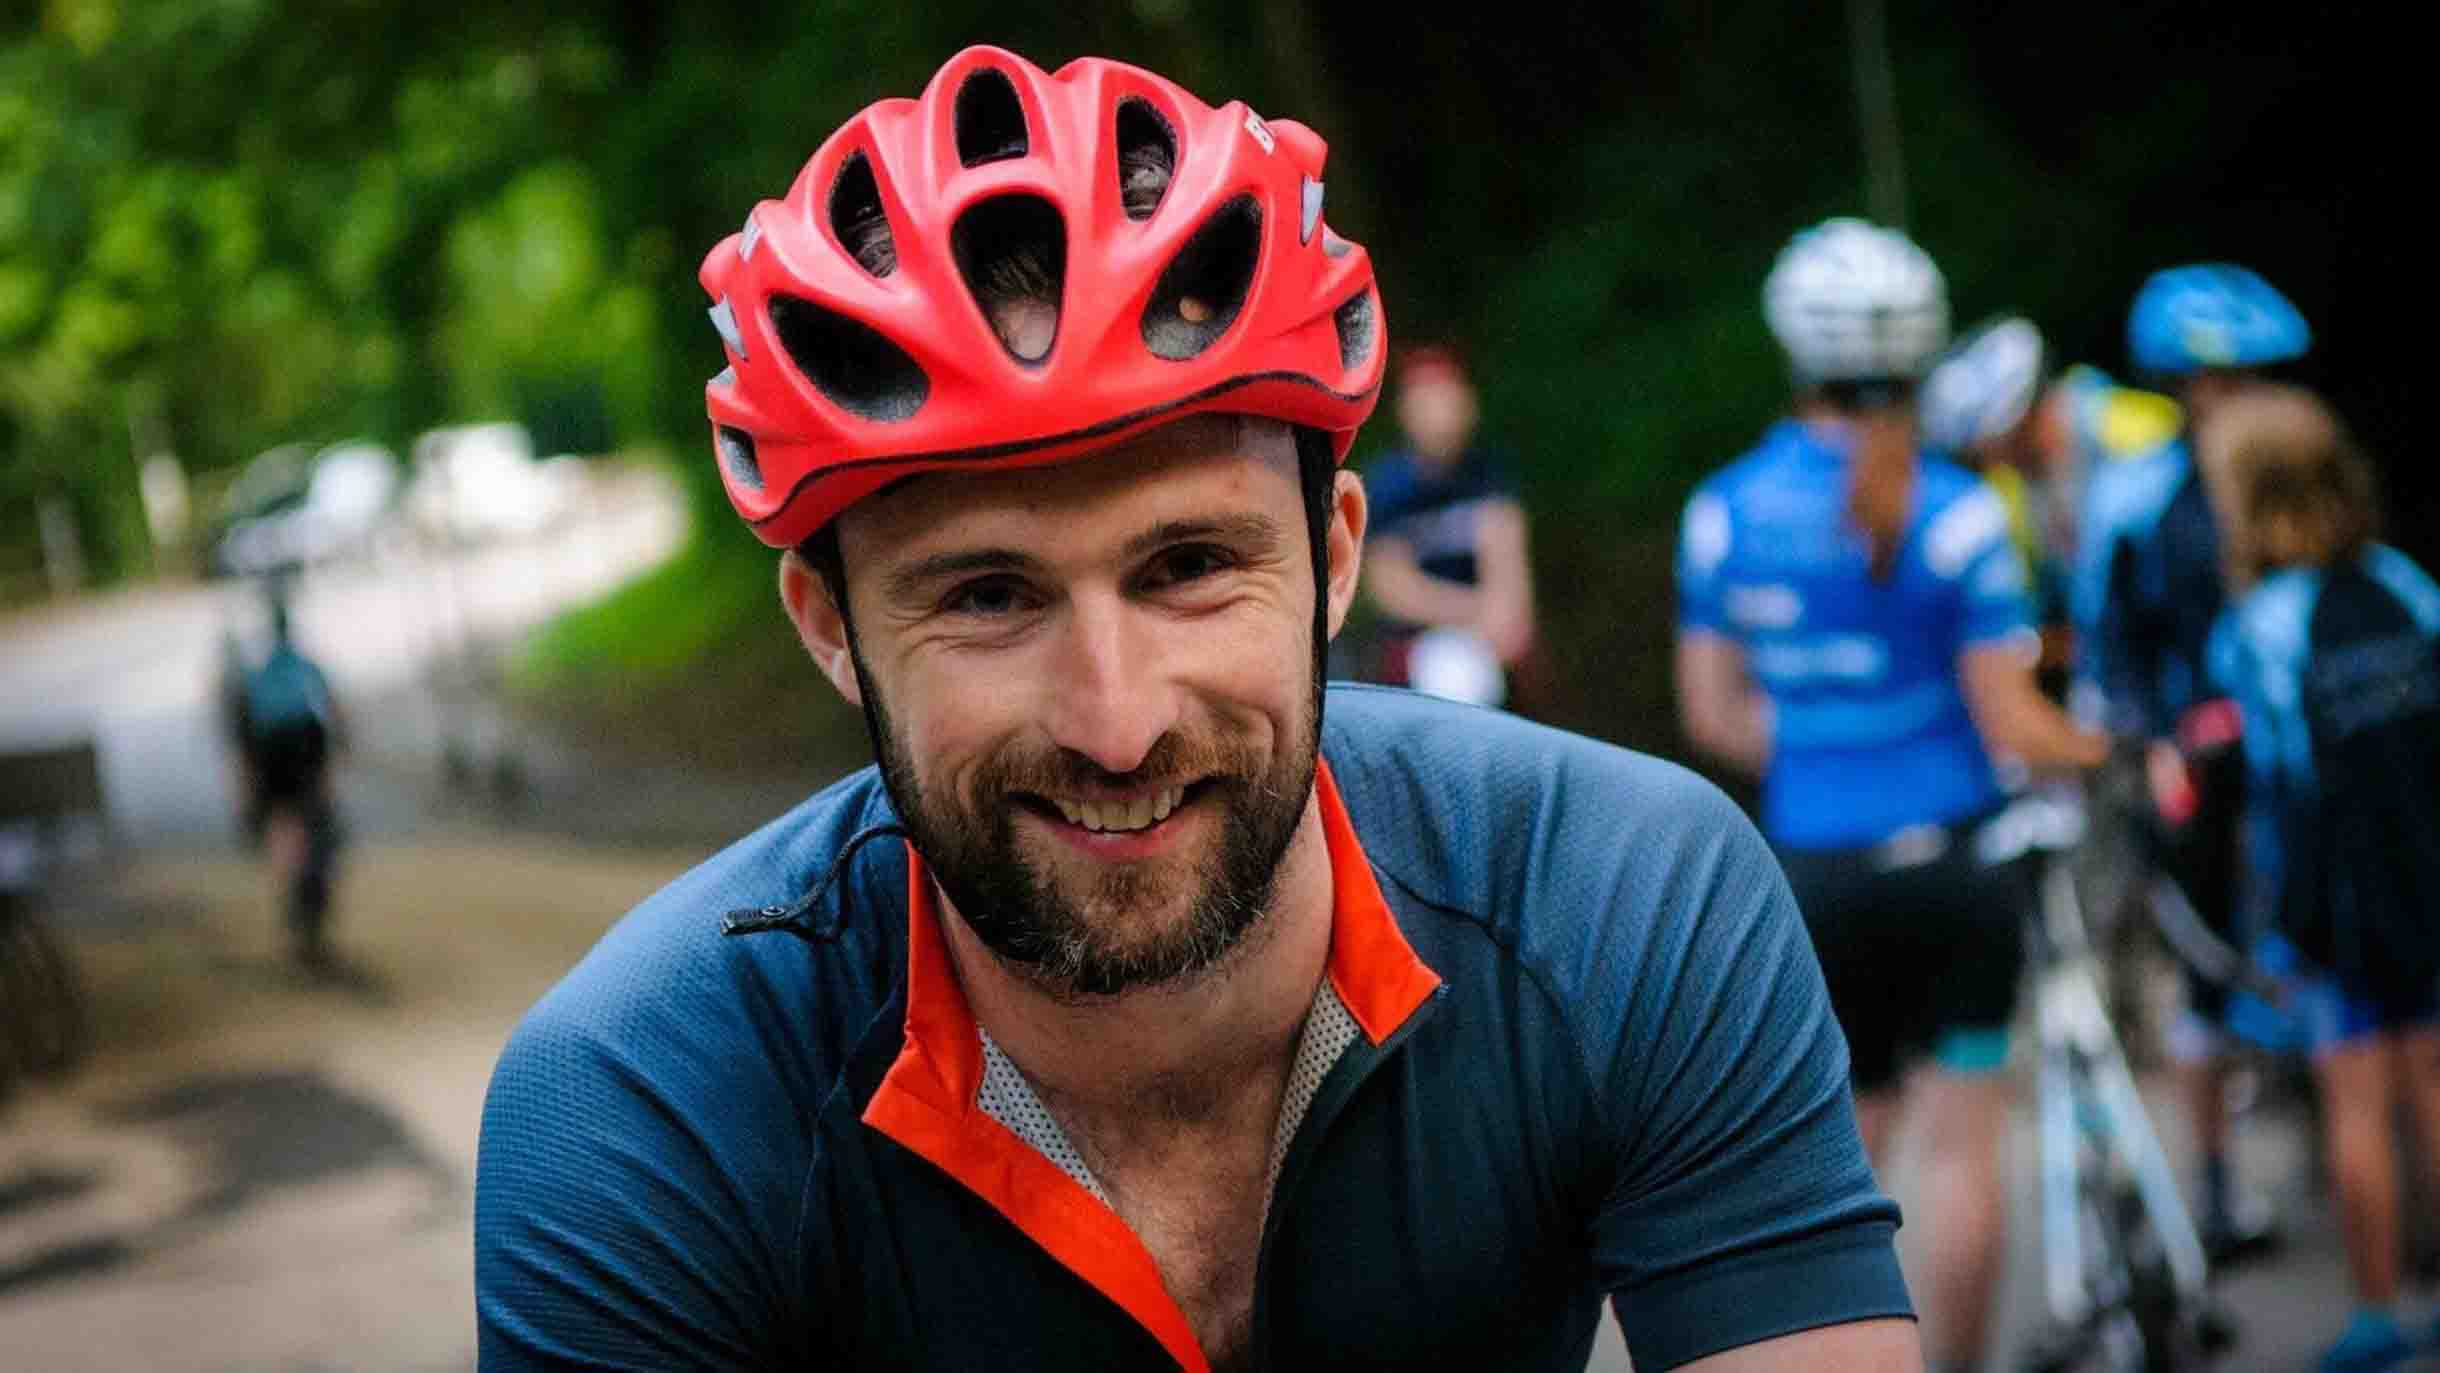 In his downtime, Paul's an avid cyclist…